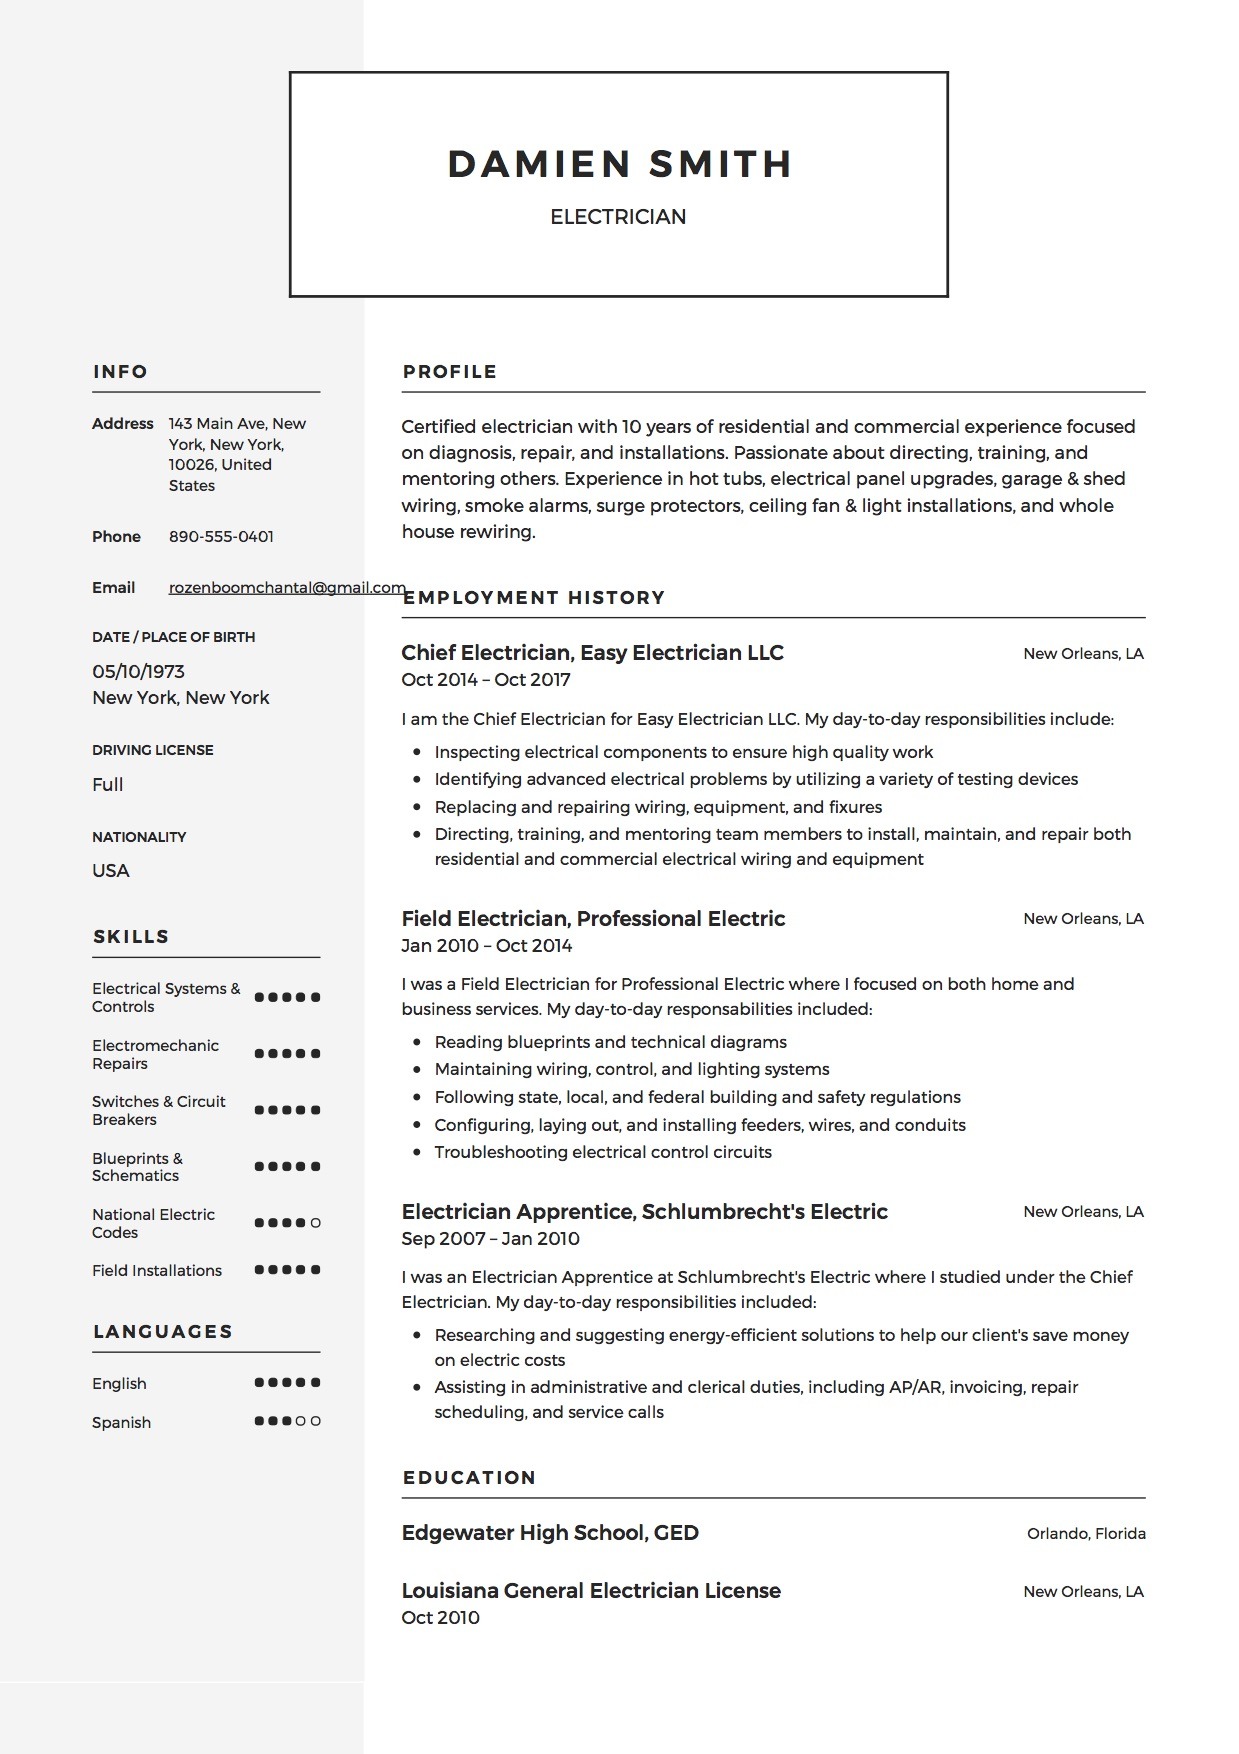 Download sample resume templates in pdf, word formats. Guide Electrician Resume Samples 12 Examples Pdf Word 2020